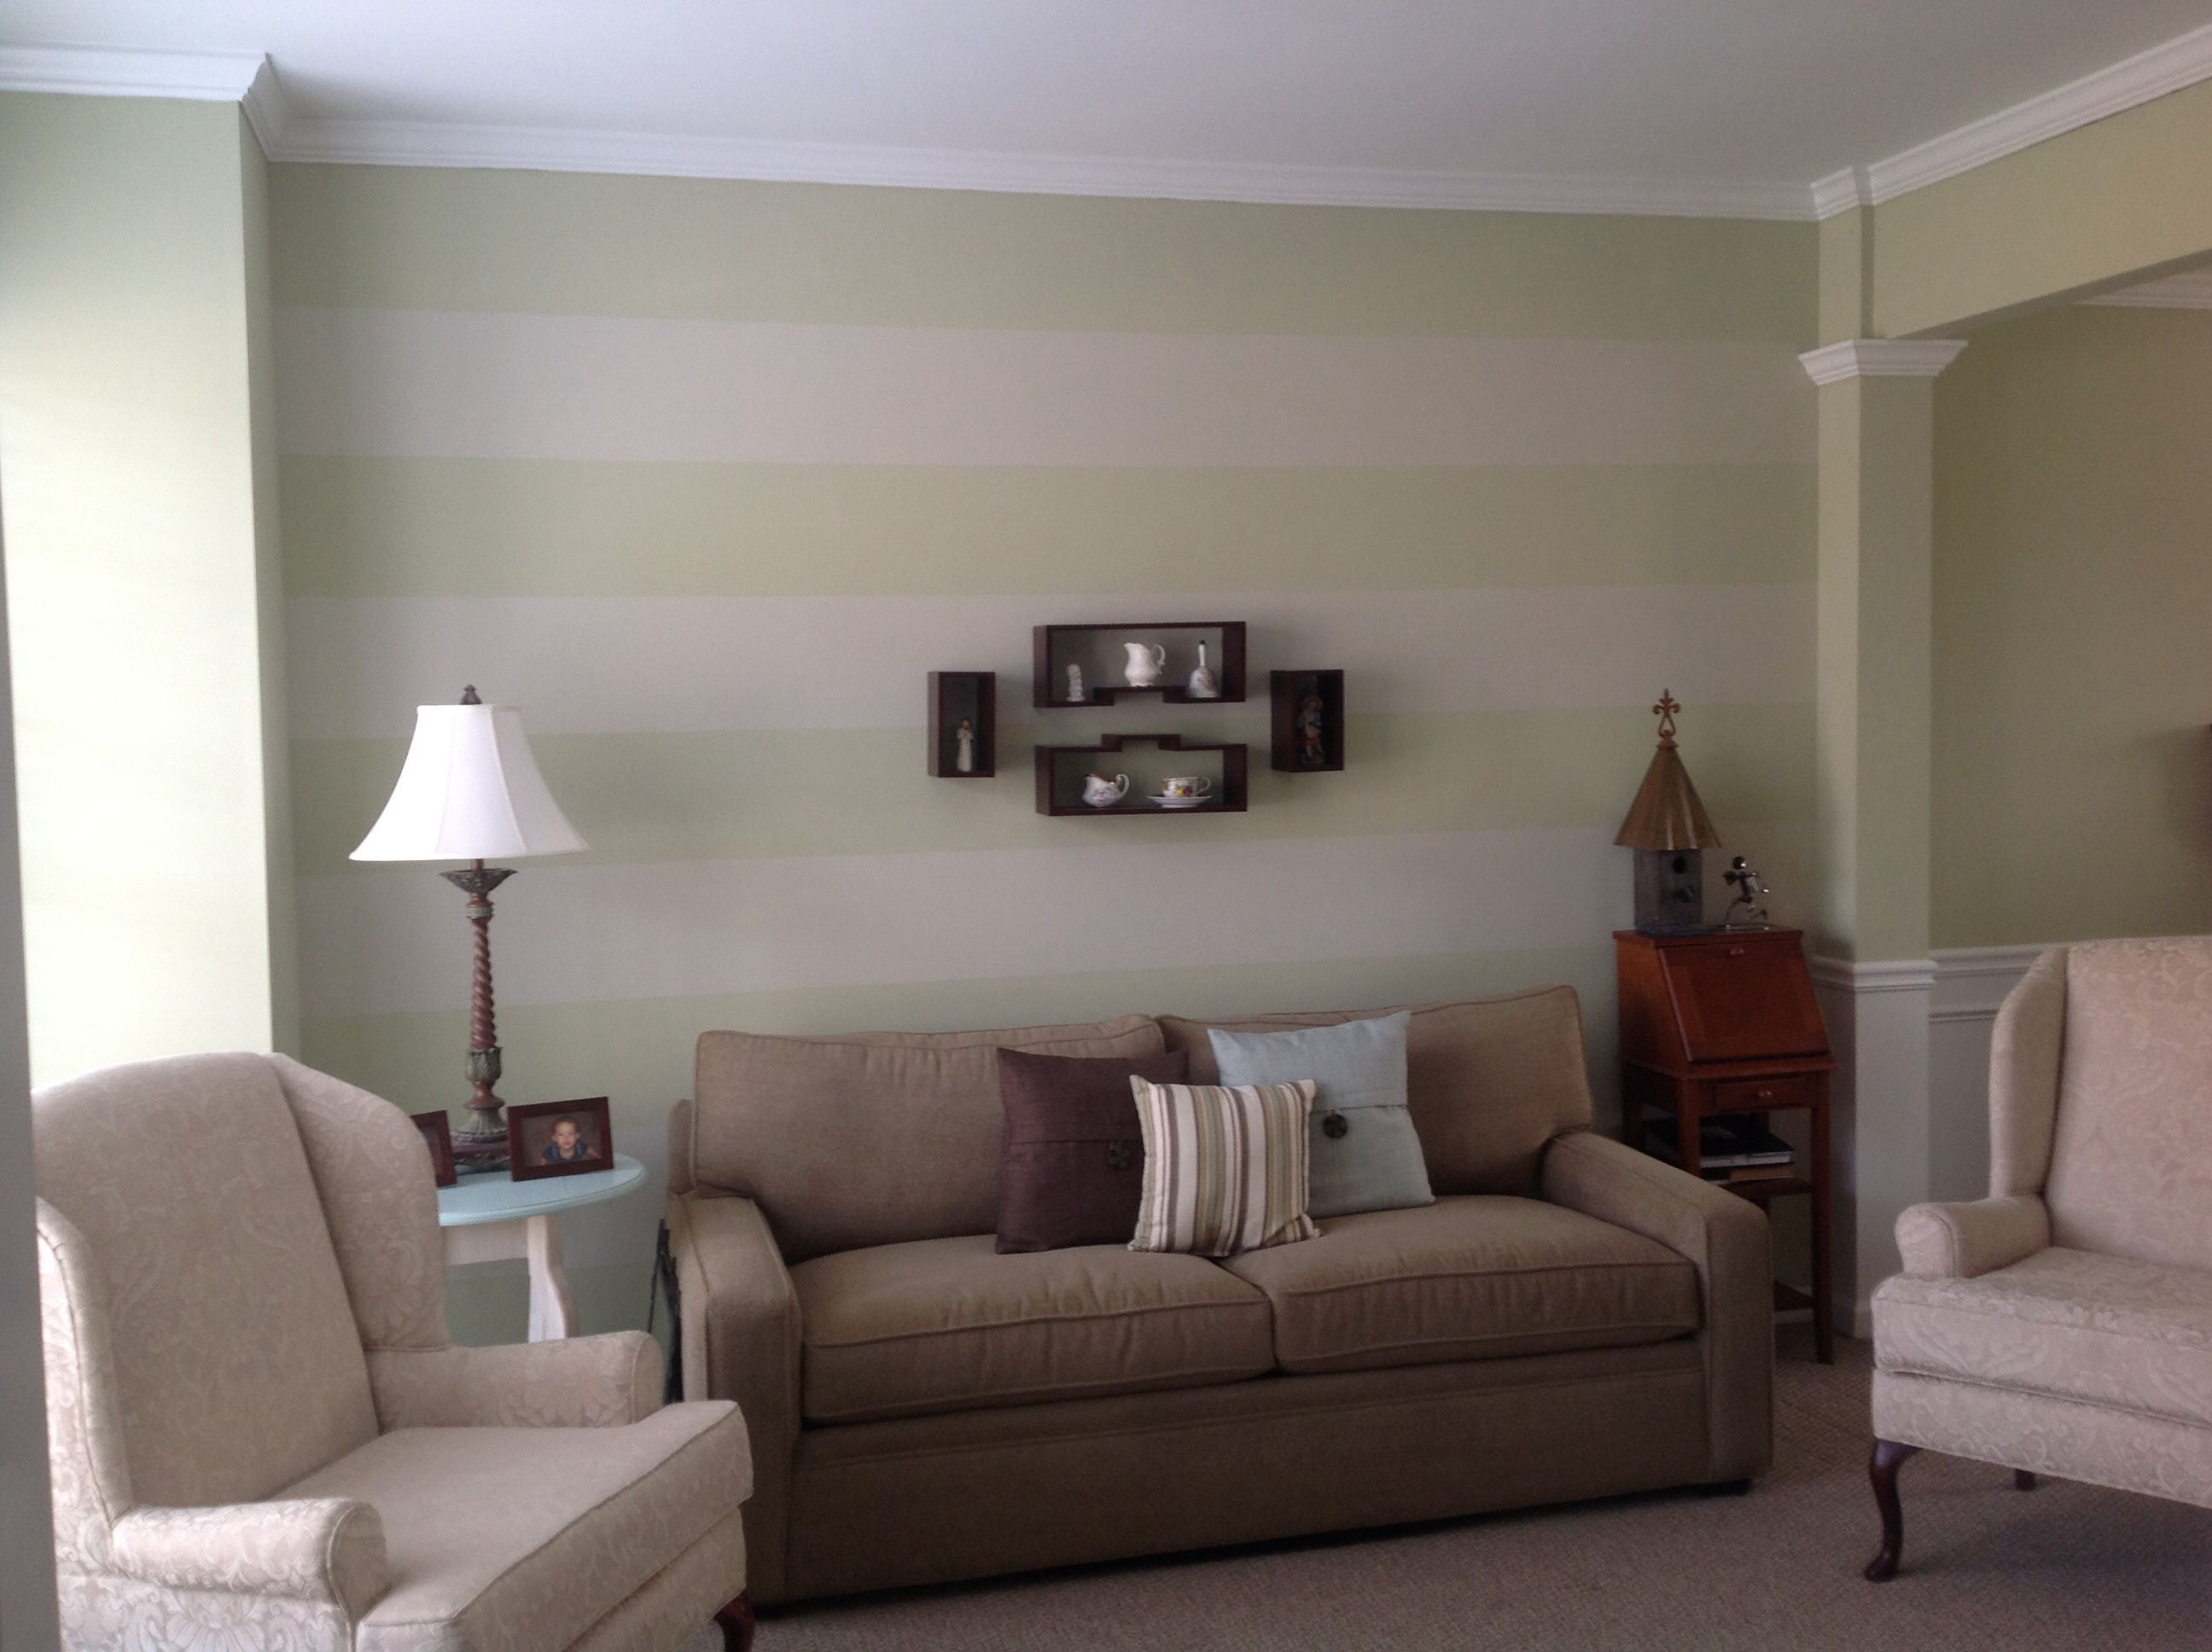 my subtle striped accent wall in living room accent walls pinterest walls room and living. Black Bedroom Furniture Sets. Home Design Ideas